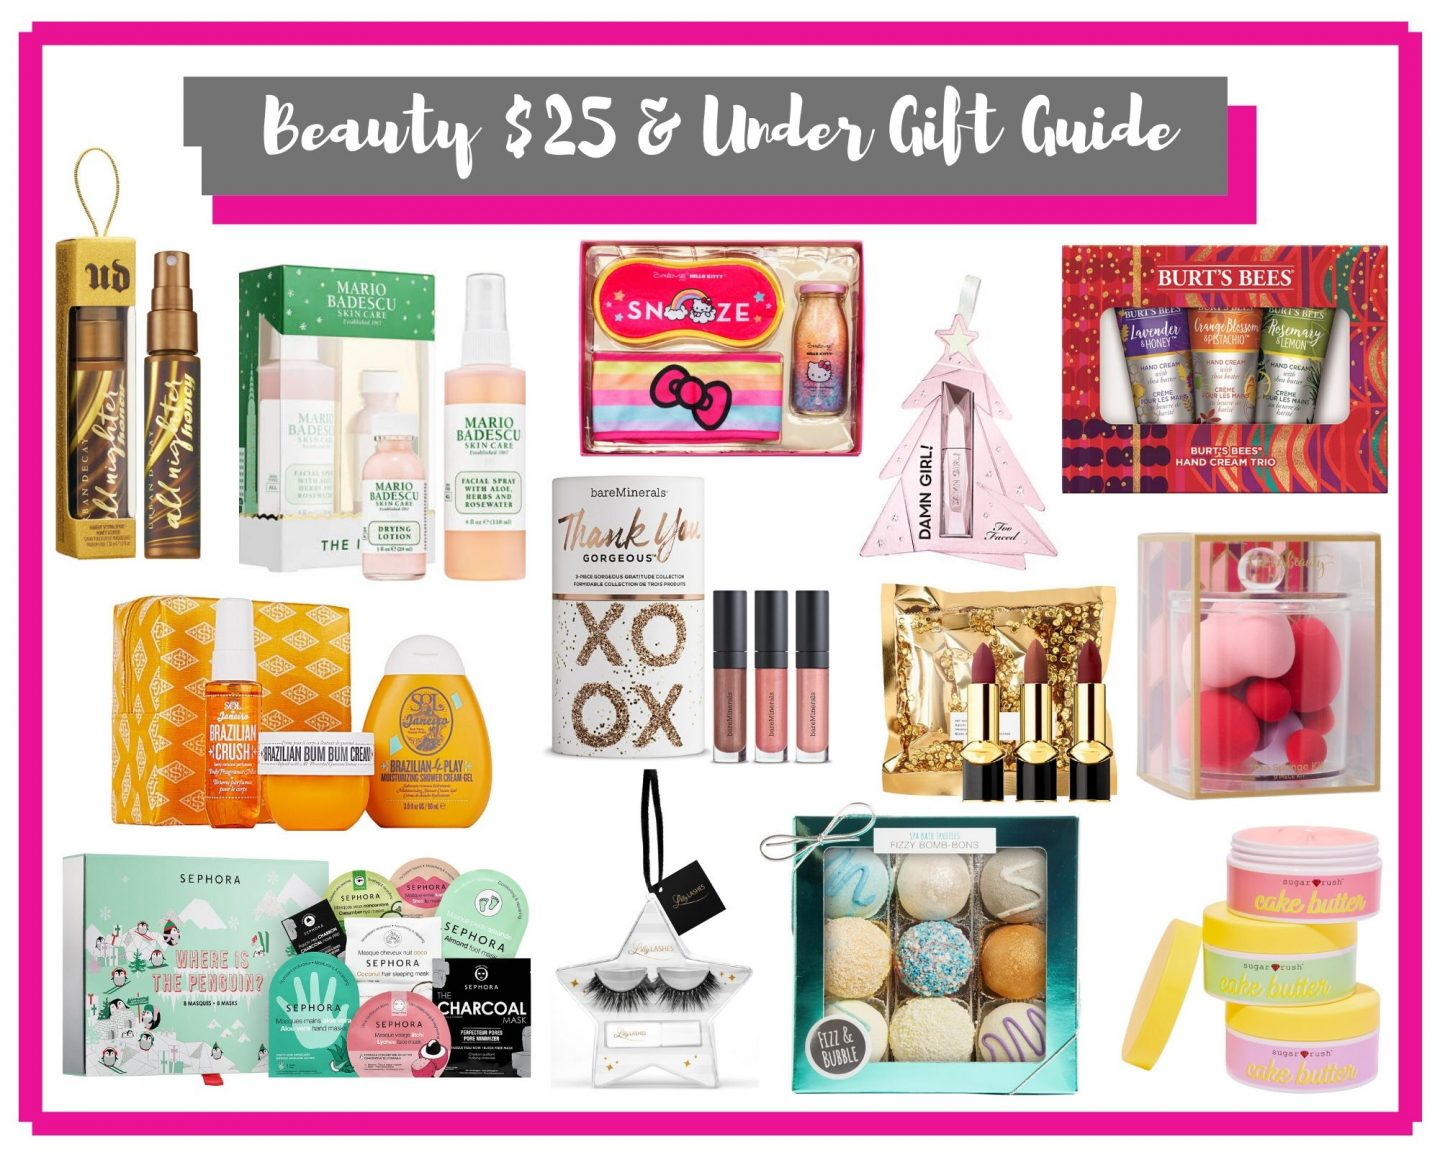 Beauty $25 & Under Gift Guide